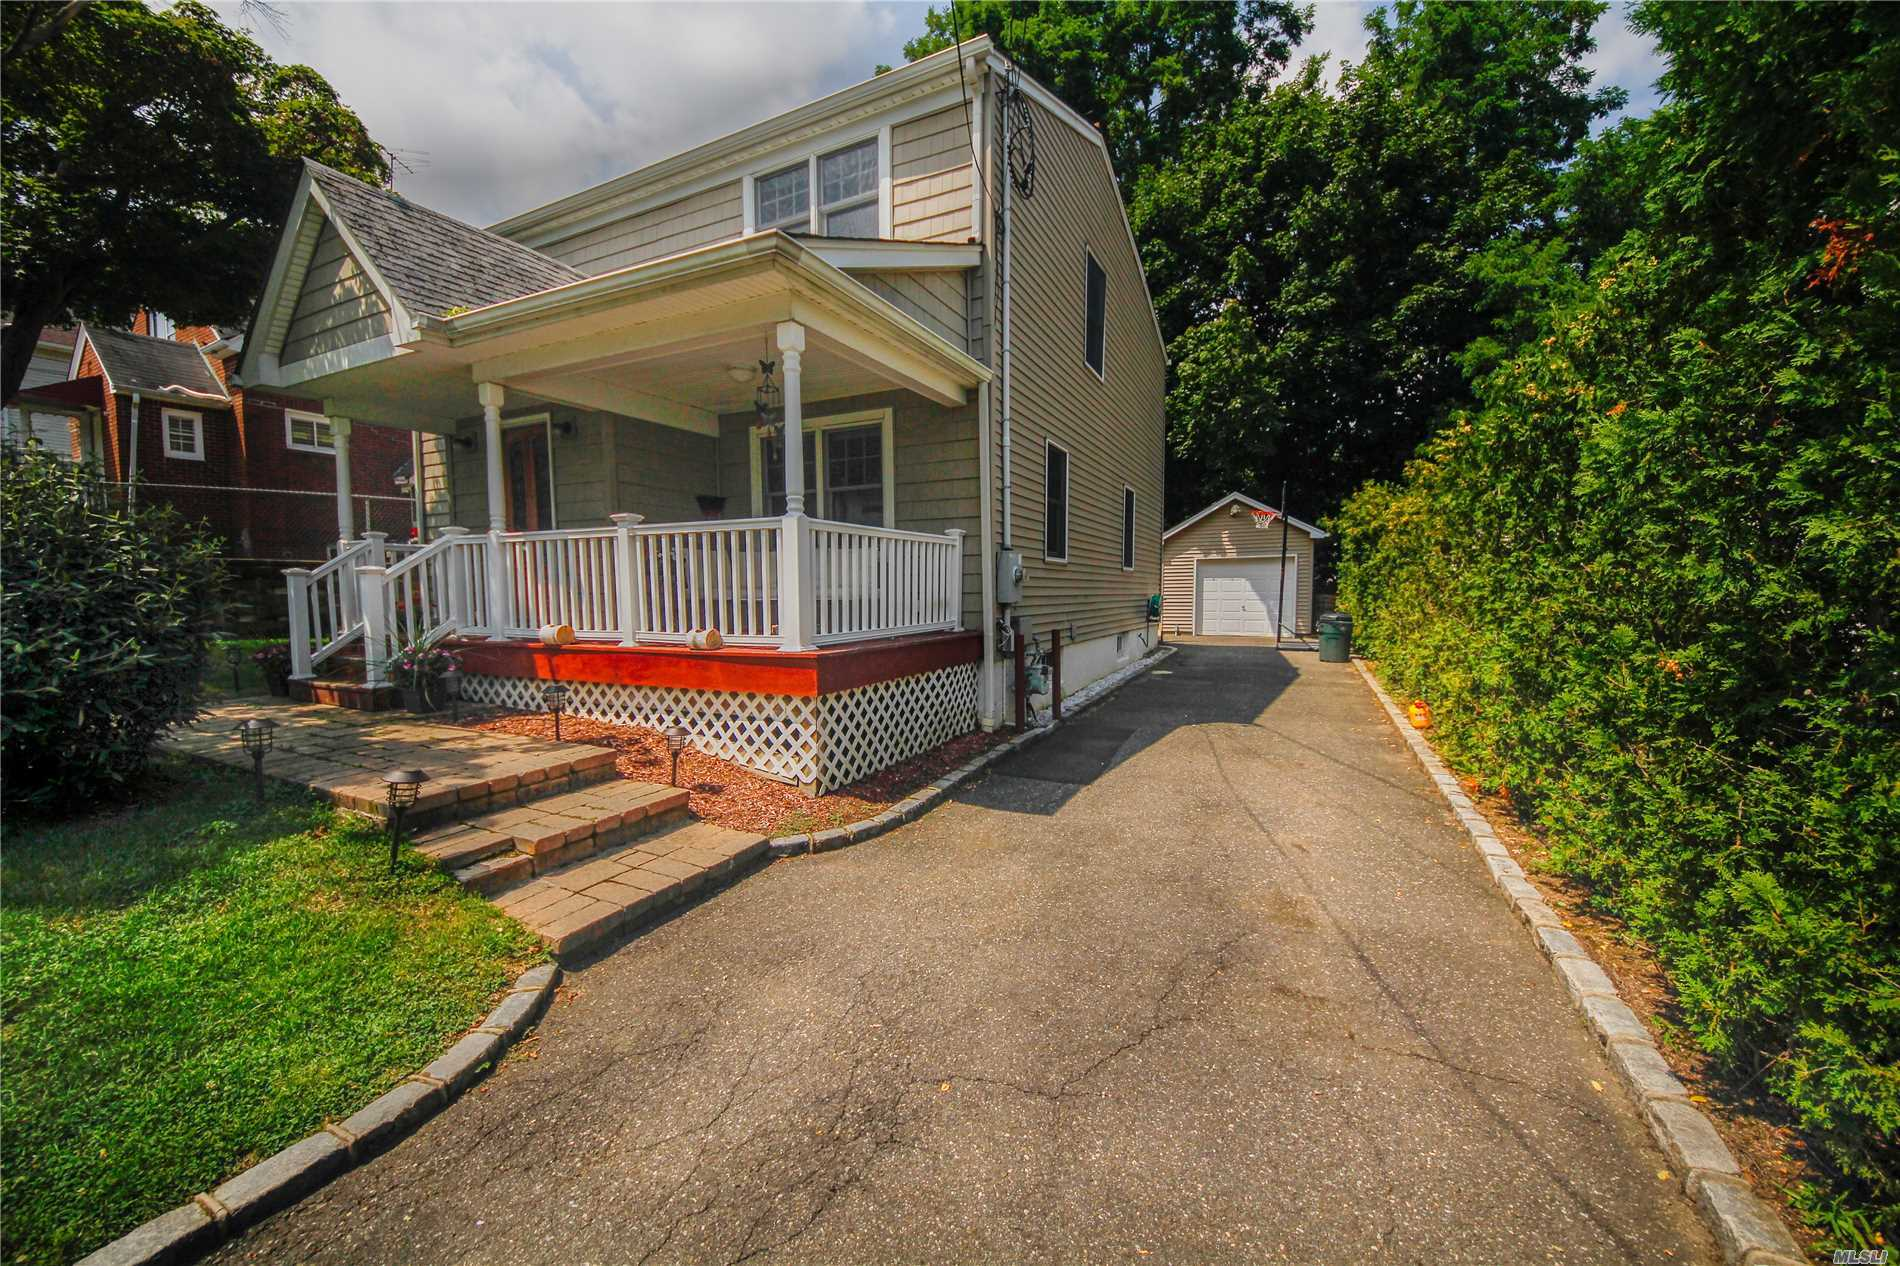 Remodeled Colonial In 2007 Featuring 3 Bedrooms And 2.5 Baths, Hardwood Floors, Open Floor Plan, Gas Heating, 1 Car Det Garage, Low Taxes & Full Finished Basement!